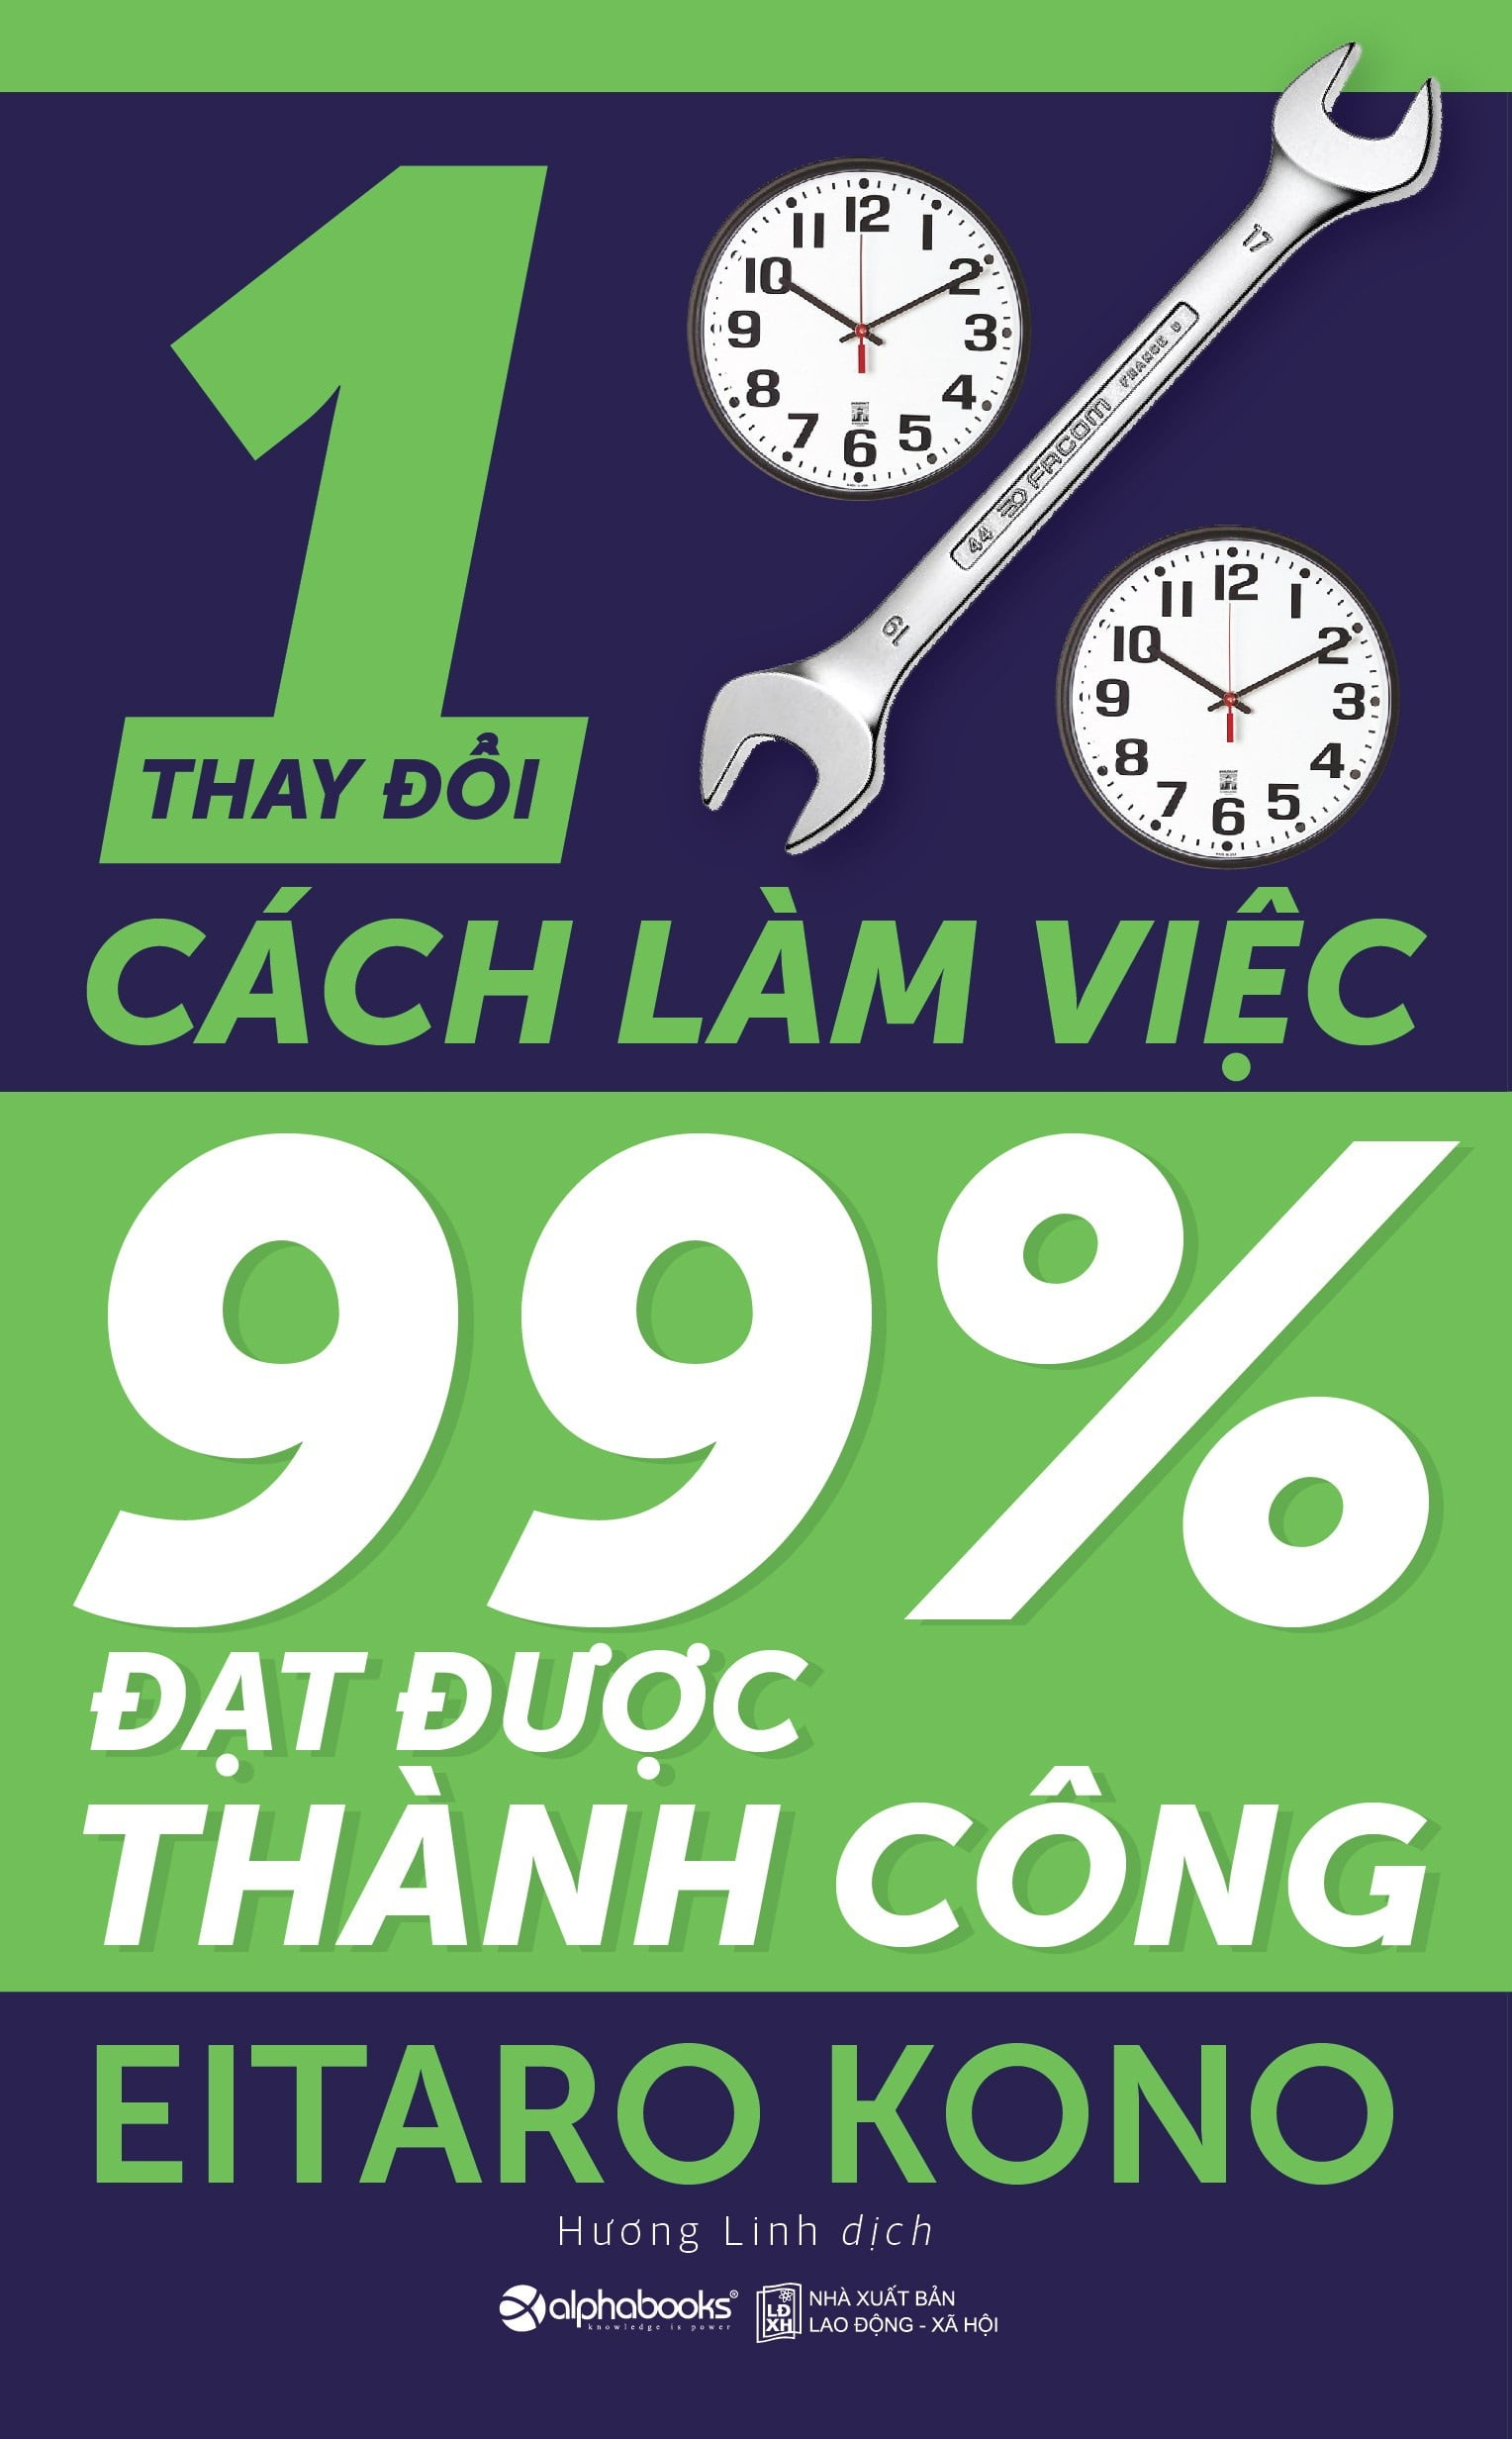 thay doi 1% cach lam viec - dat duoc 99% thanh cong